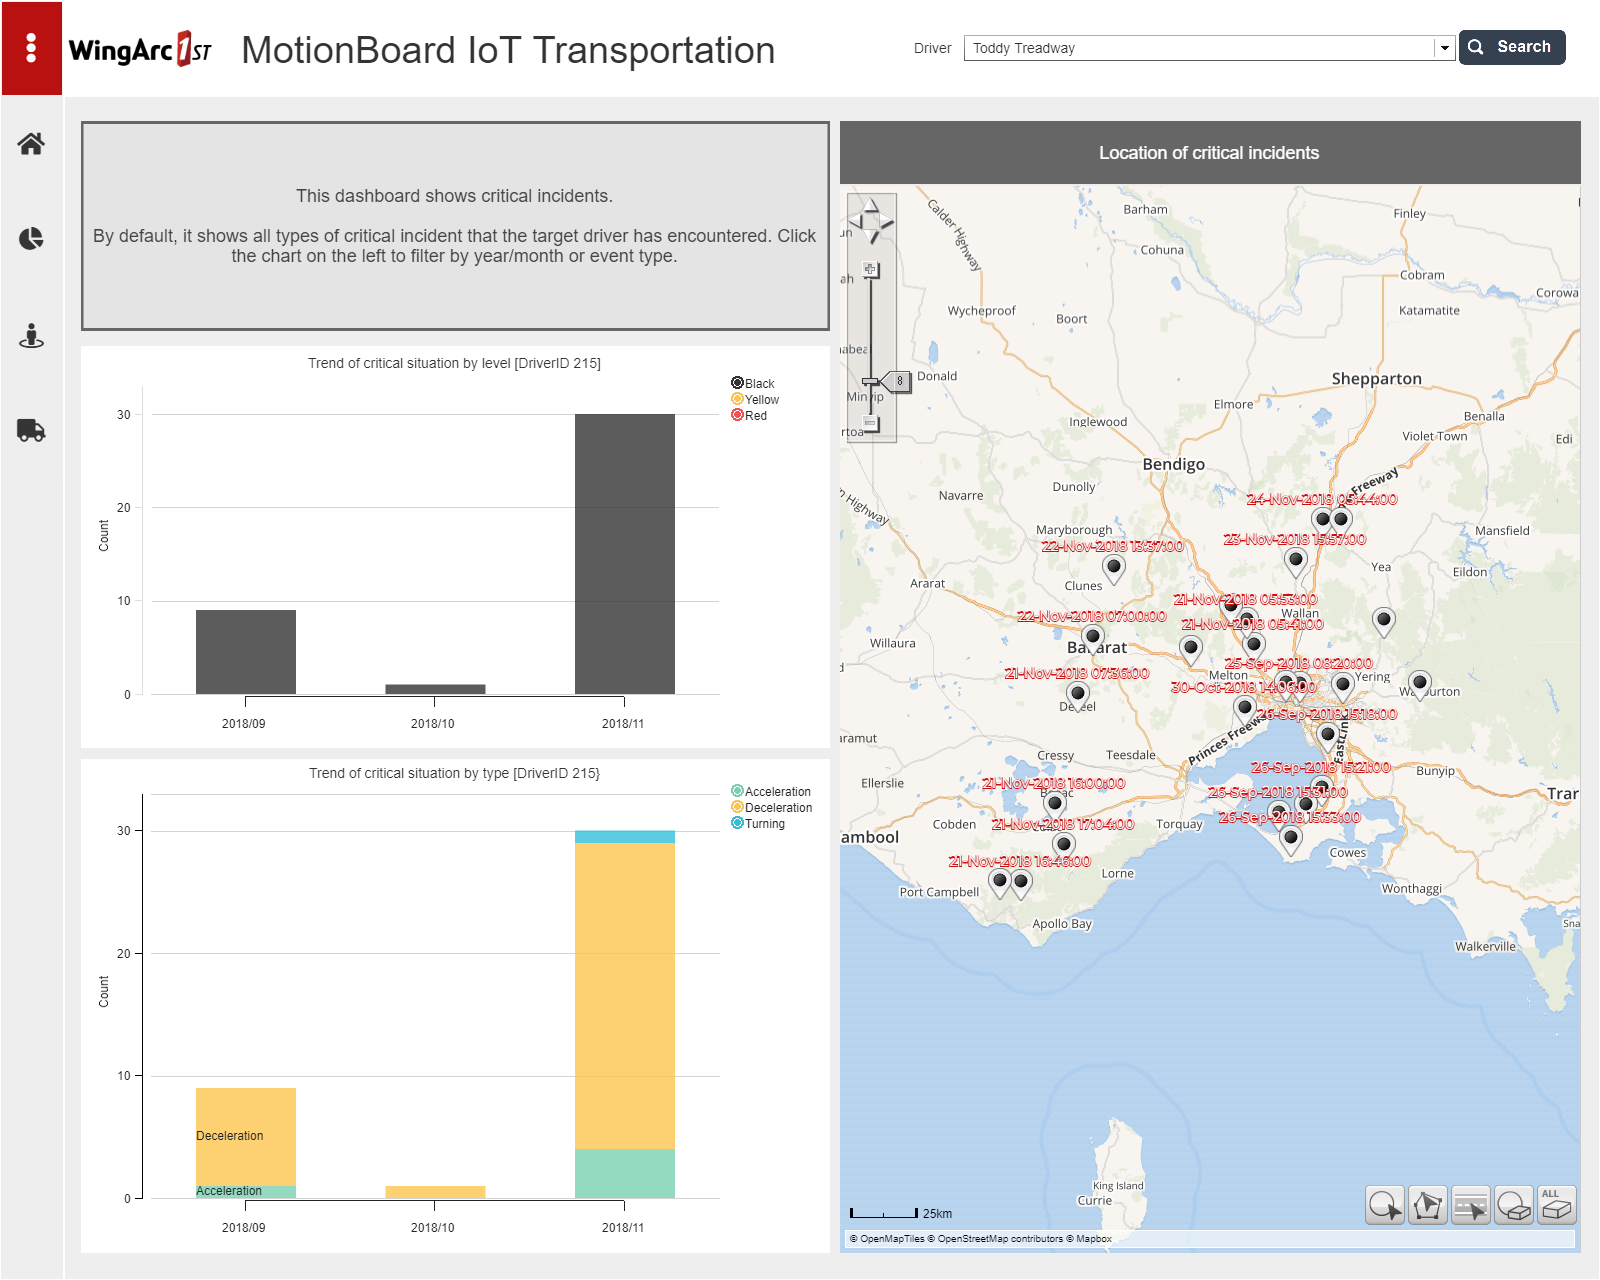 MotionBoard IoT Transportation